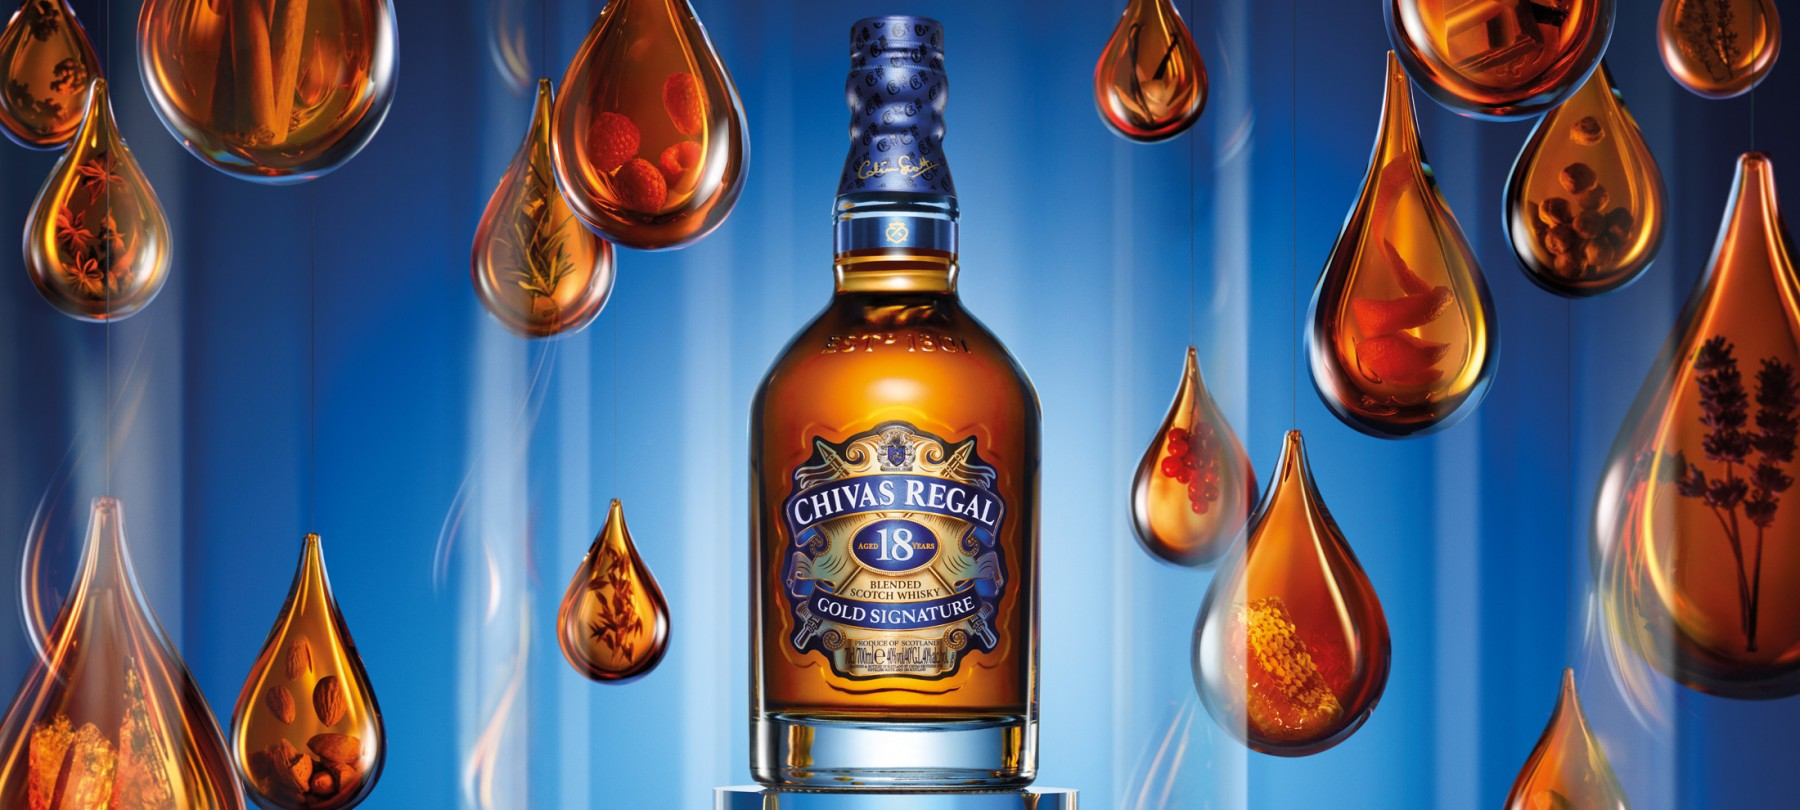 Chivas-Regal-and-London-Glassblowing-banner